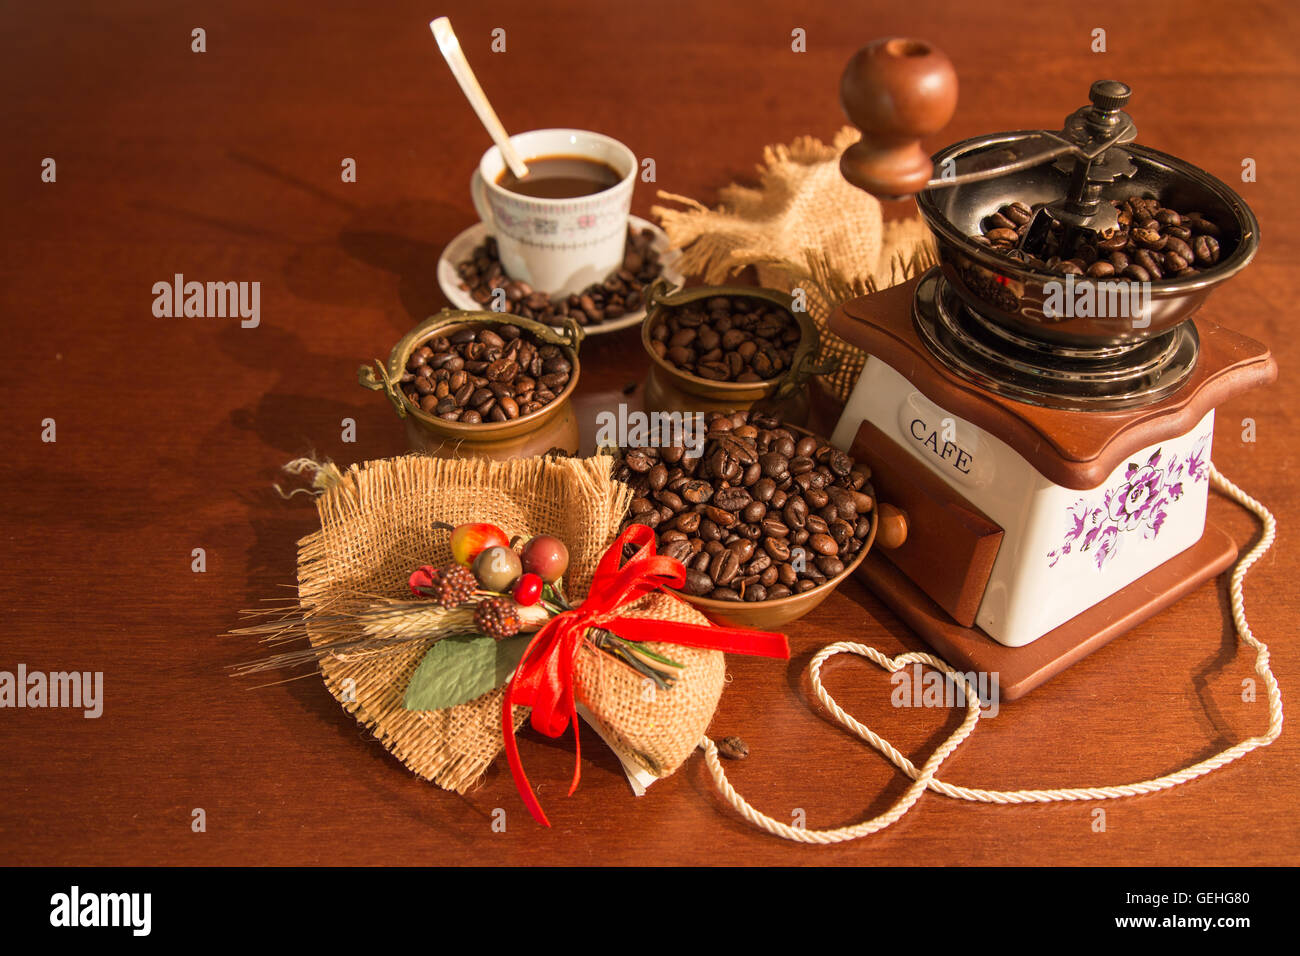 Grinder with coffee beans in copper bowls and Cup with composition of jute - Stock Image